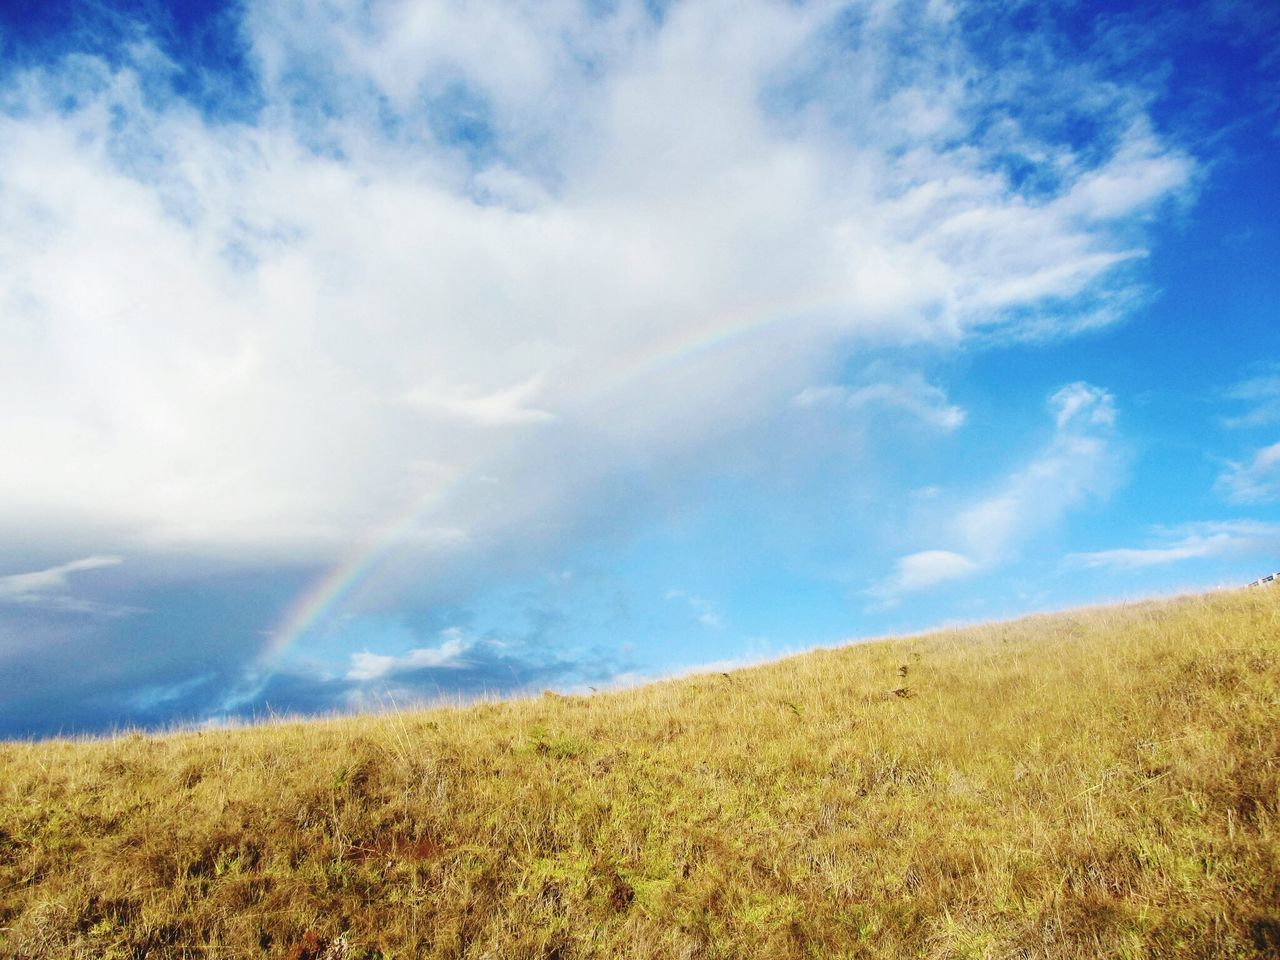 field, landscape, nature, sky, scenics, beauty in nature, tranquil scene, grass, tranquility, day, cloud - sky, growth, outdoors, no people